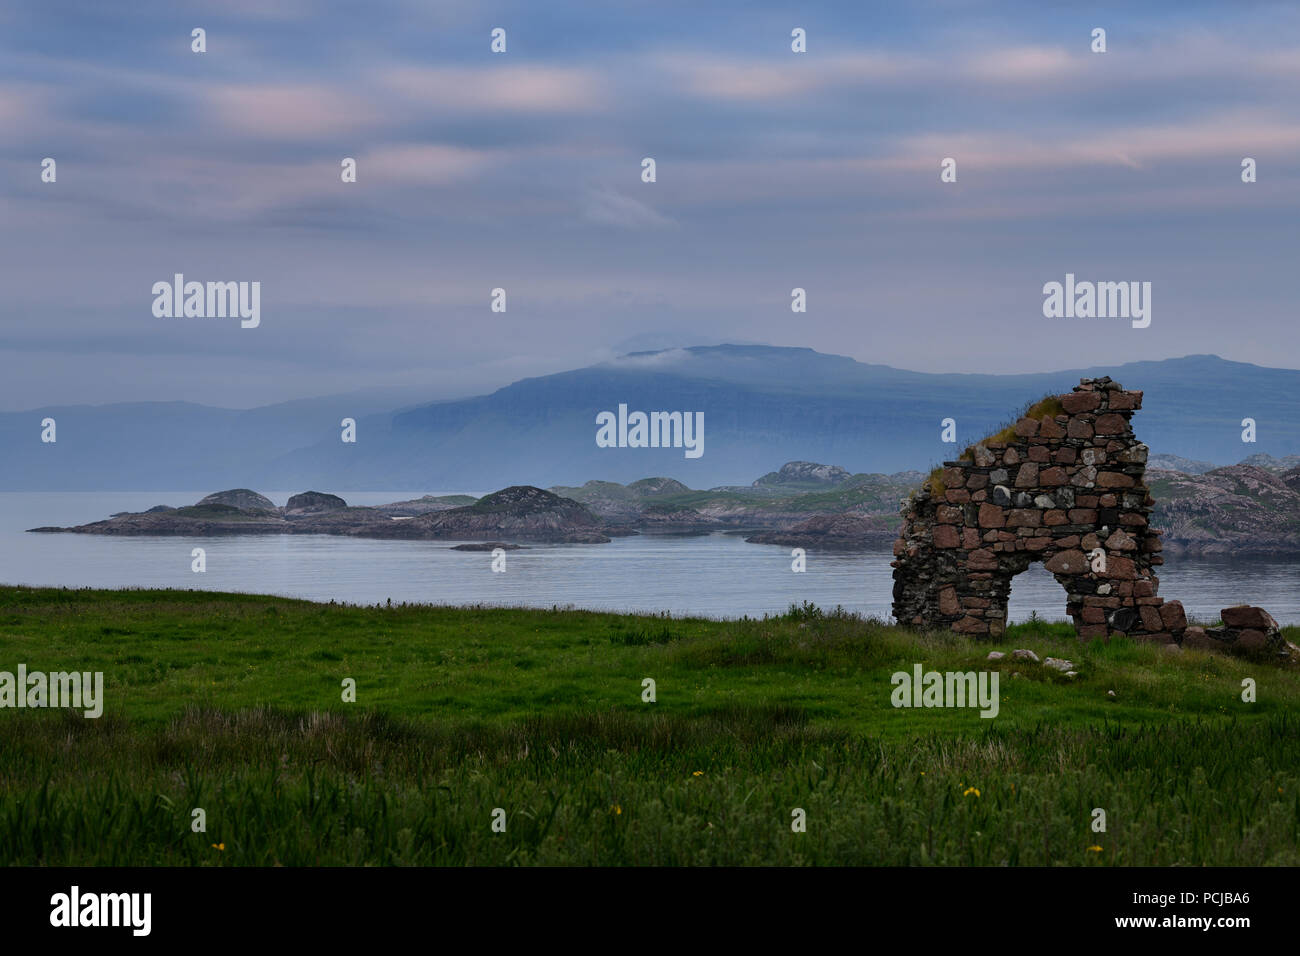 Granite stone ruins of the Bishop's House next to Iona Abbey at dusk on Isle of Iona with view over Sound of Iona to Isle of Mull mountains Scotland - Stock Image